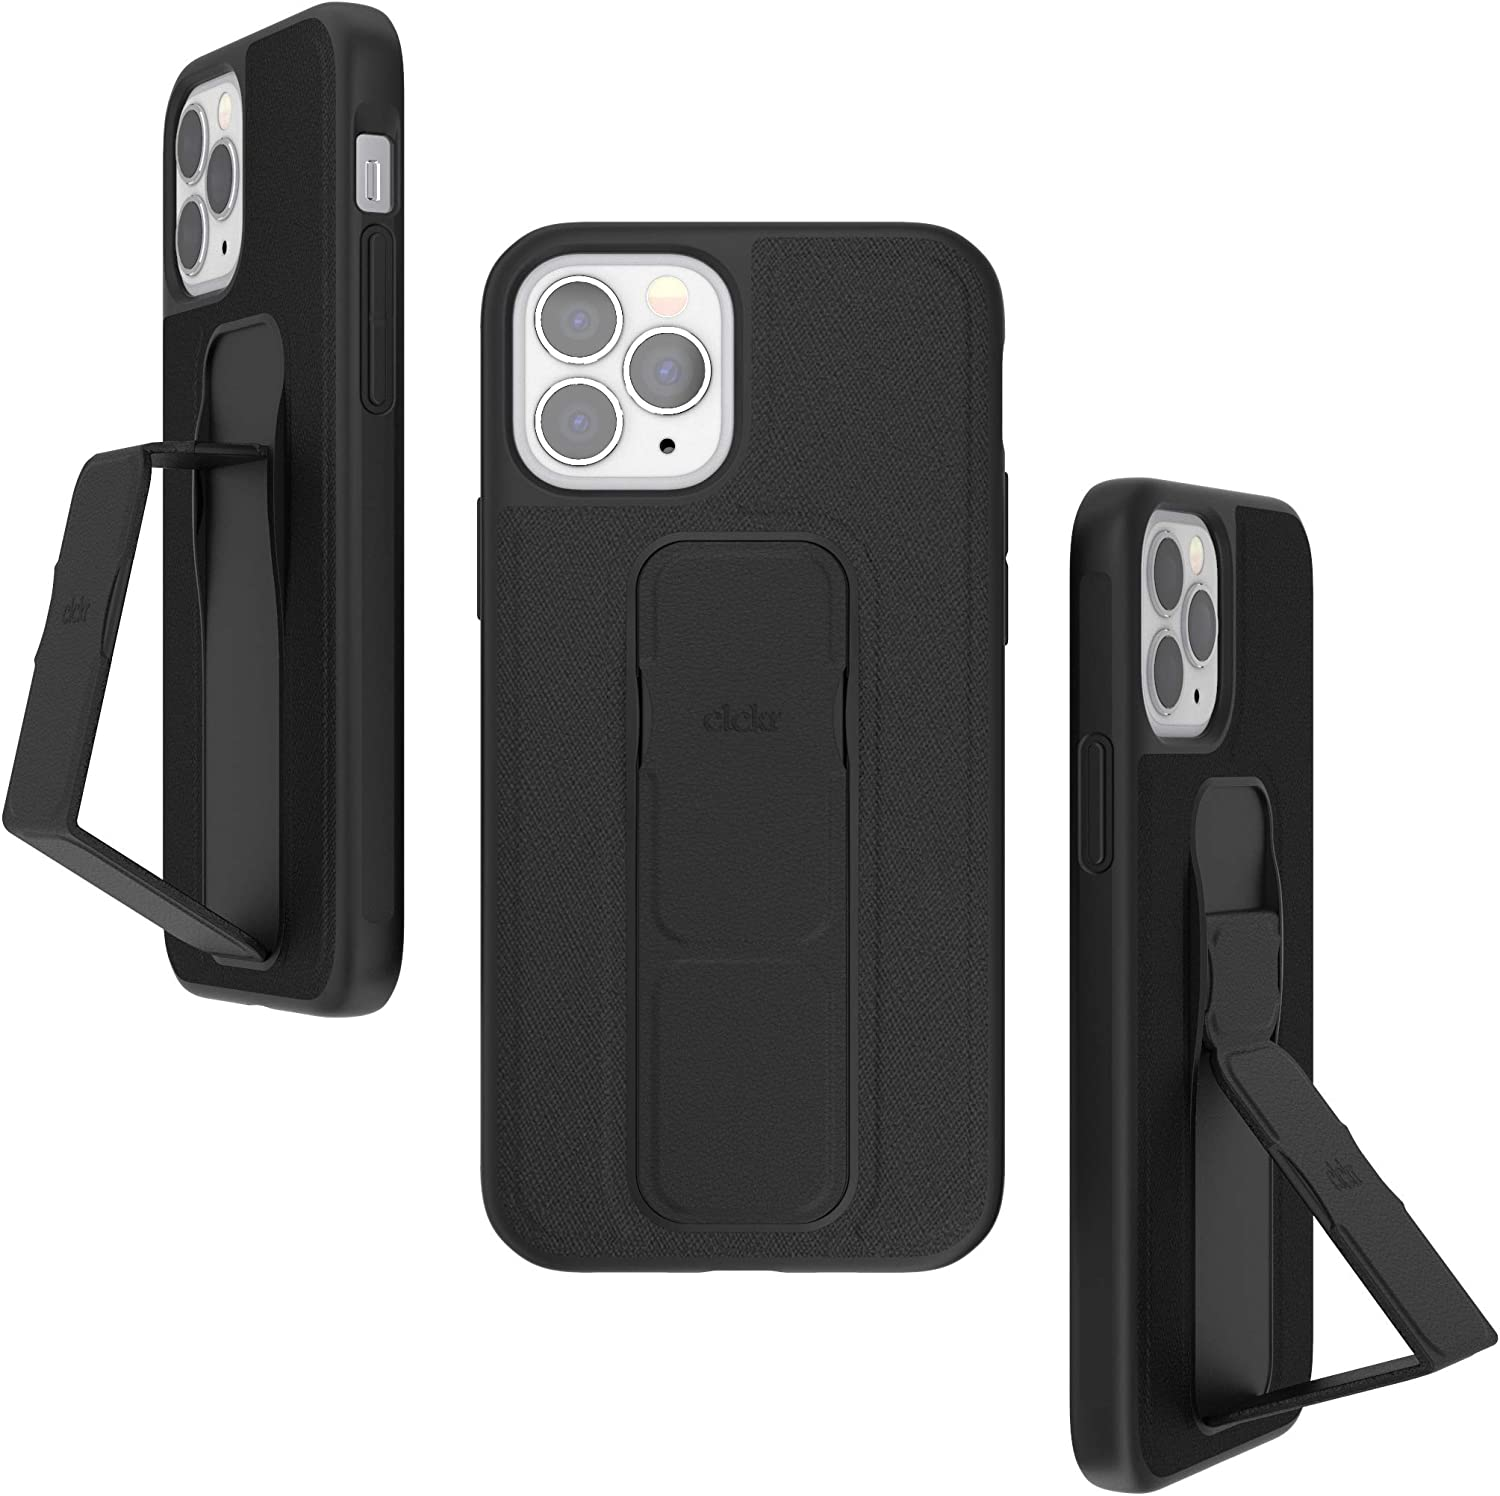 CLCKR Compatible with iPhone 12, iPhone 12 Pro Case with Kickstand, Phone Grip and Expanding Stand, Cell Phone Cover with Grip Holder, Saffiano Black